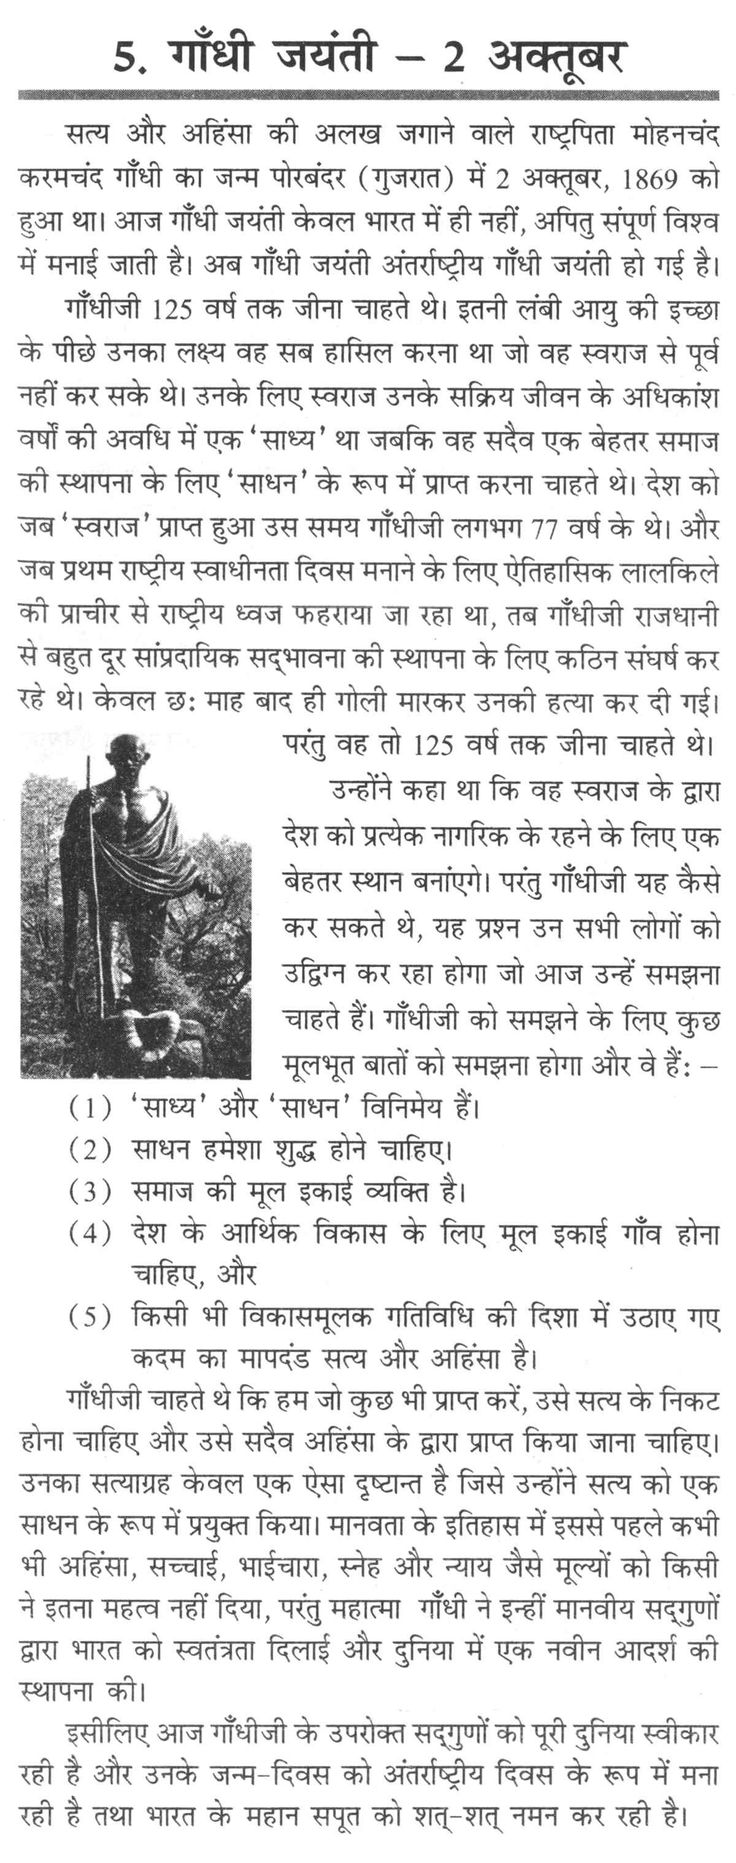 the best information of mahatma gandhi ideas  marathi essays on mahatma gandhi the best expert s estimate